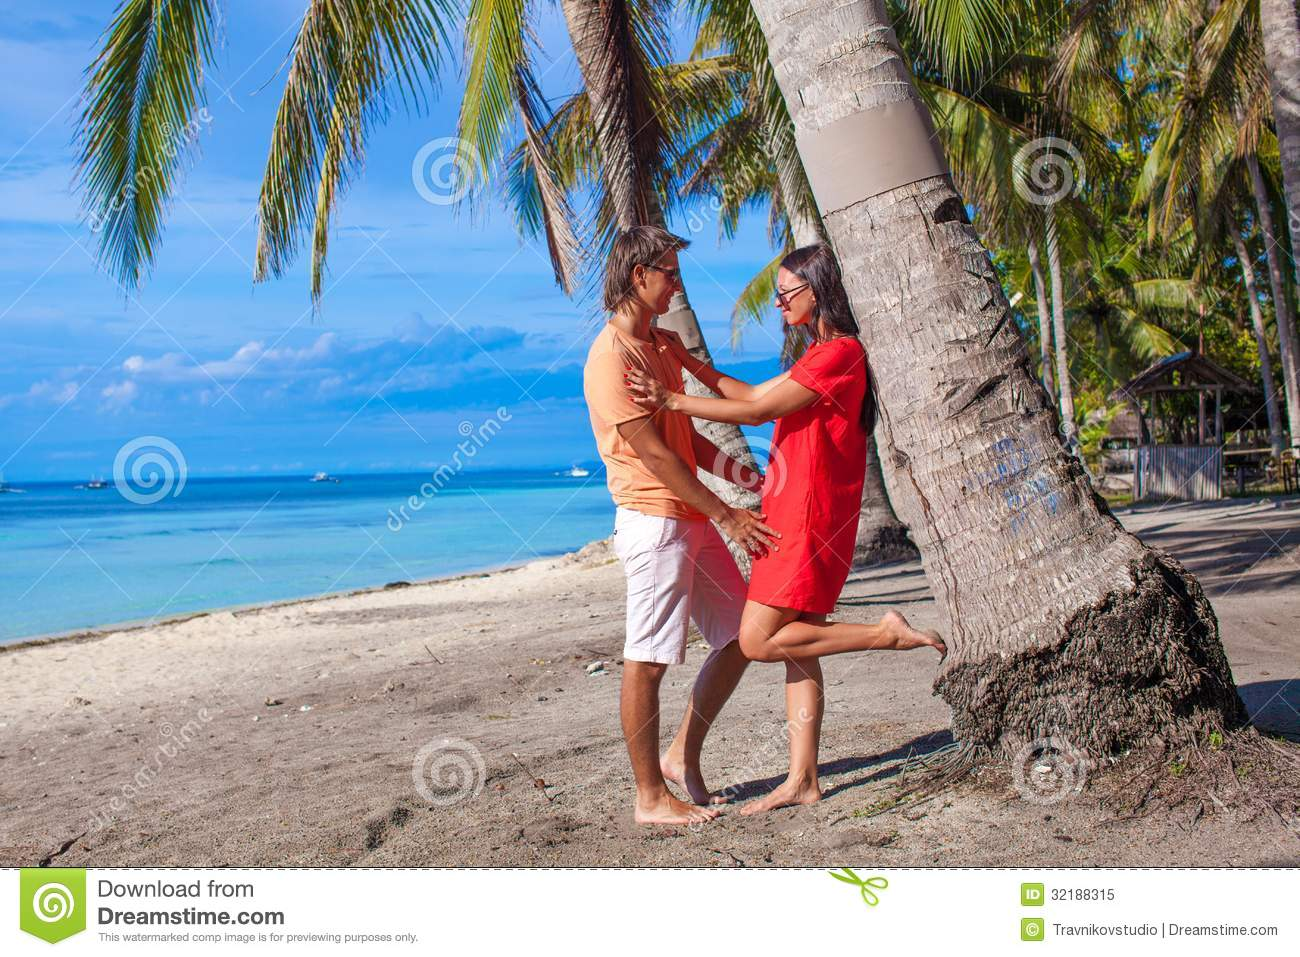 Romantic Pictures Of Tropical Beaches: Romantic Couple At Tropical Beach Near Palm Tree Royalty